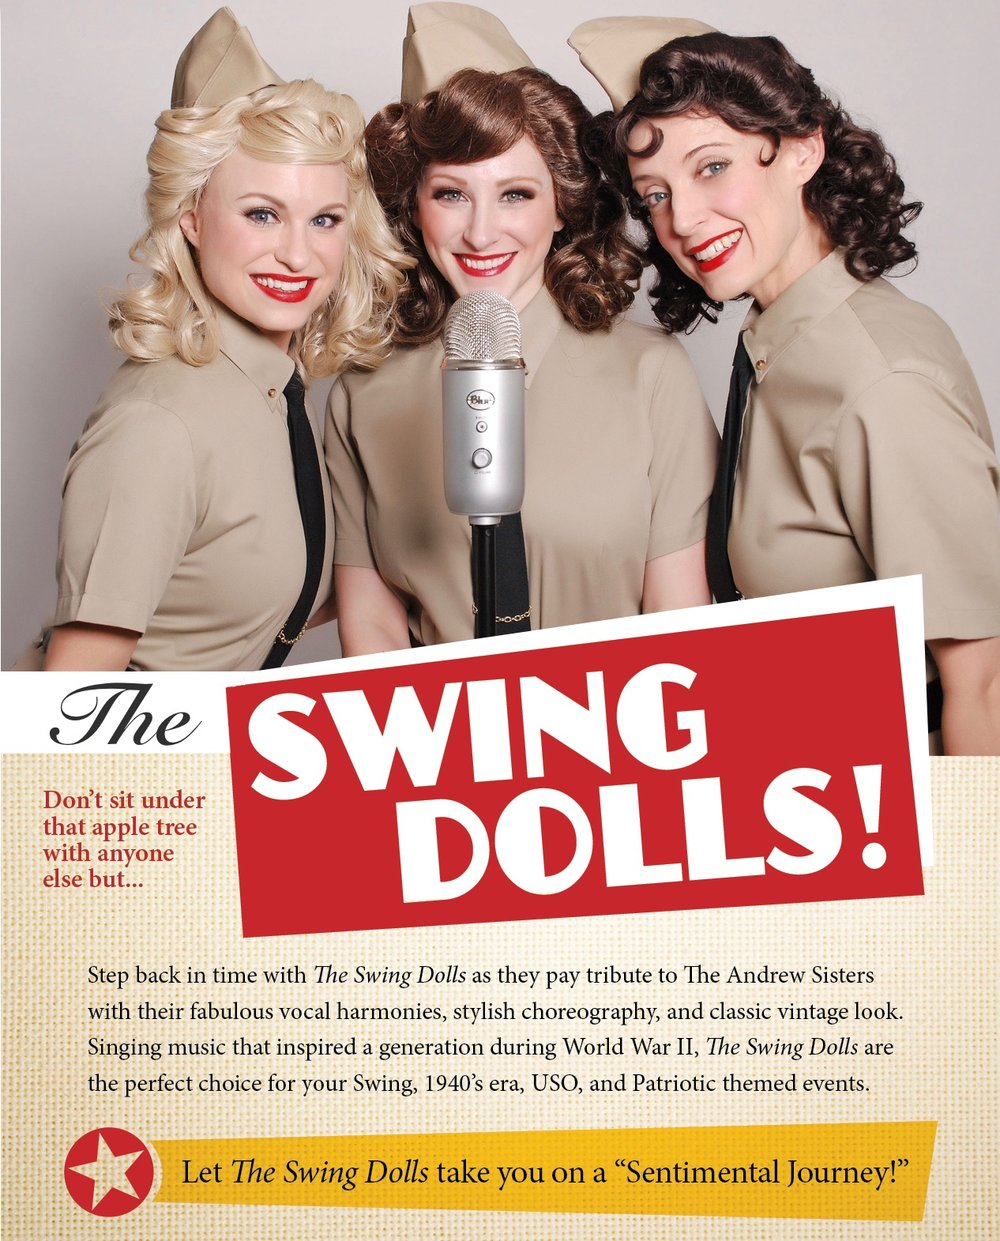 The+Swing+Dolls+flyer.jpg